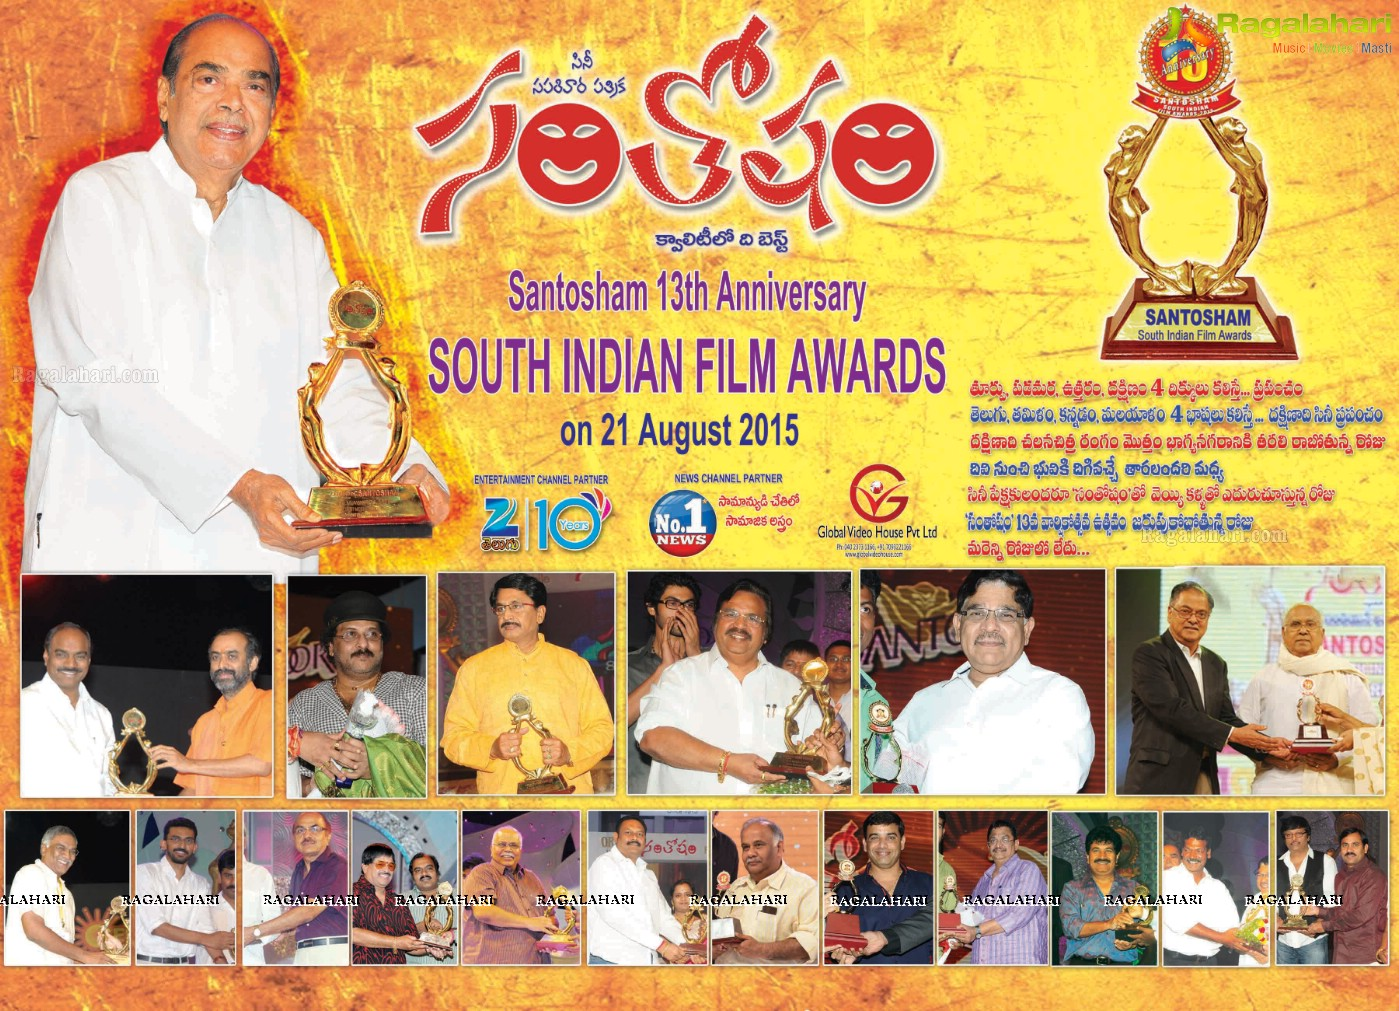 Santosham South Indian 13th Anniversary Celebrations Details